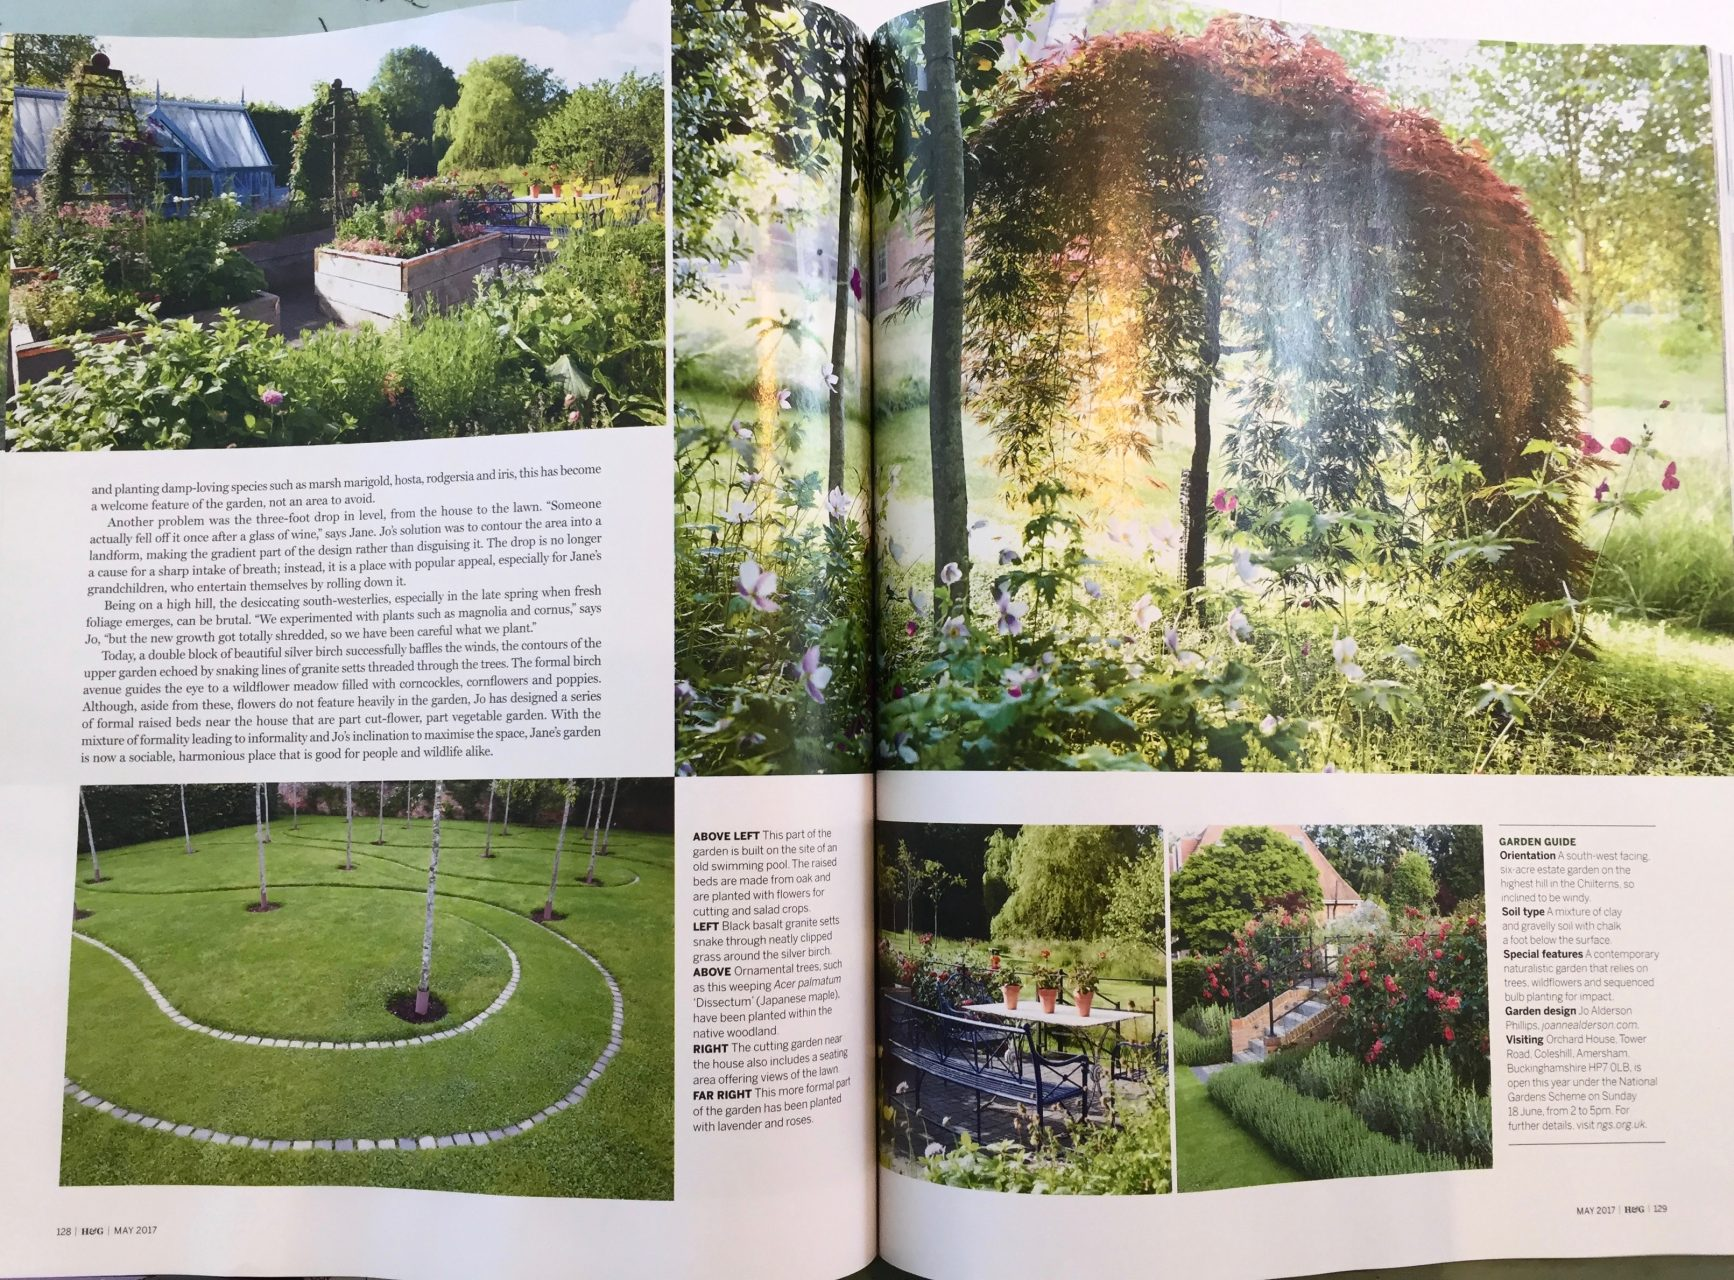 This is part of the article on the garden at Orchard House that I designed for my lovely clients Jane & Doug. It is near Beaconsfield